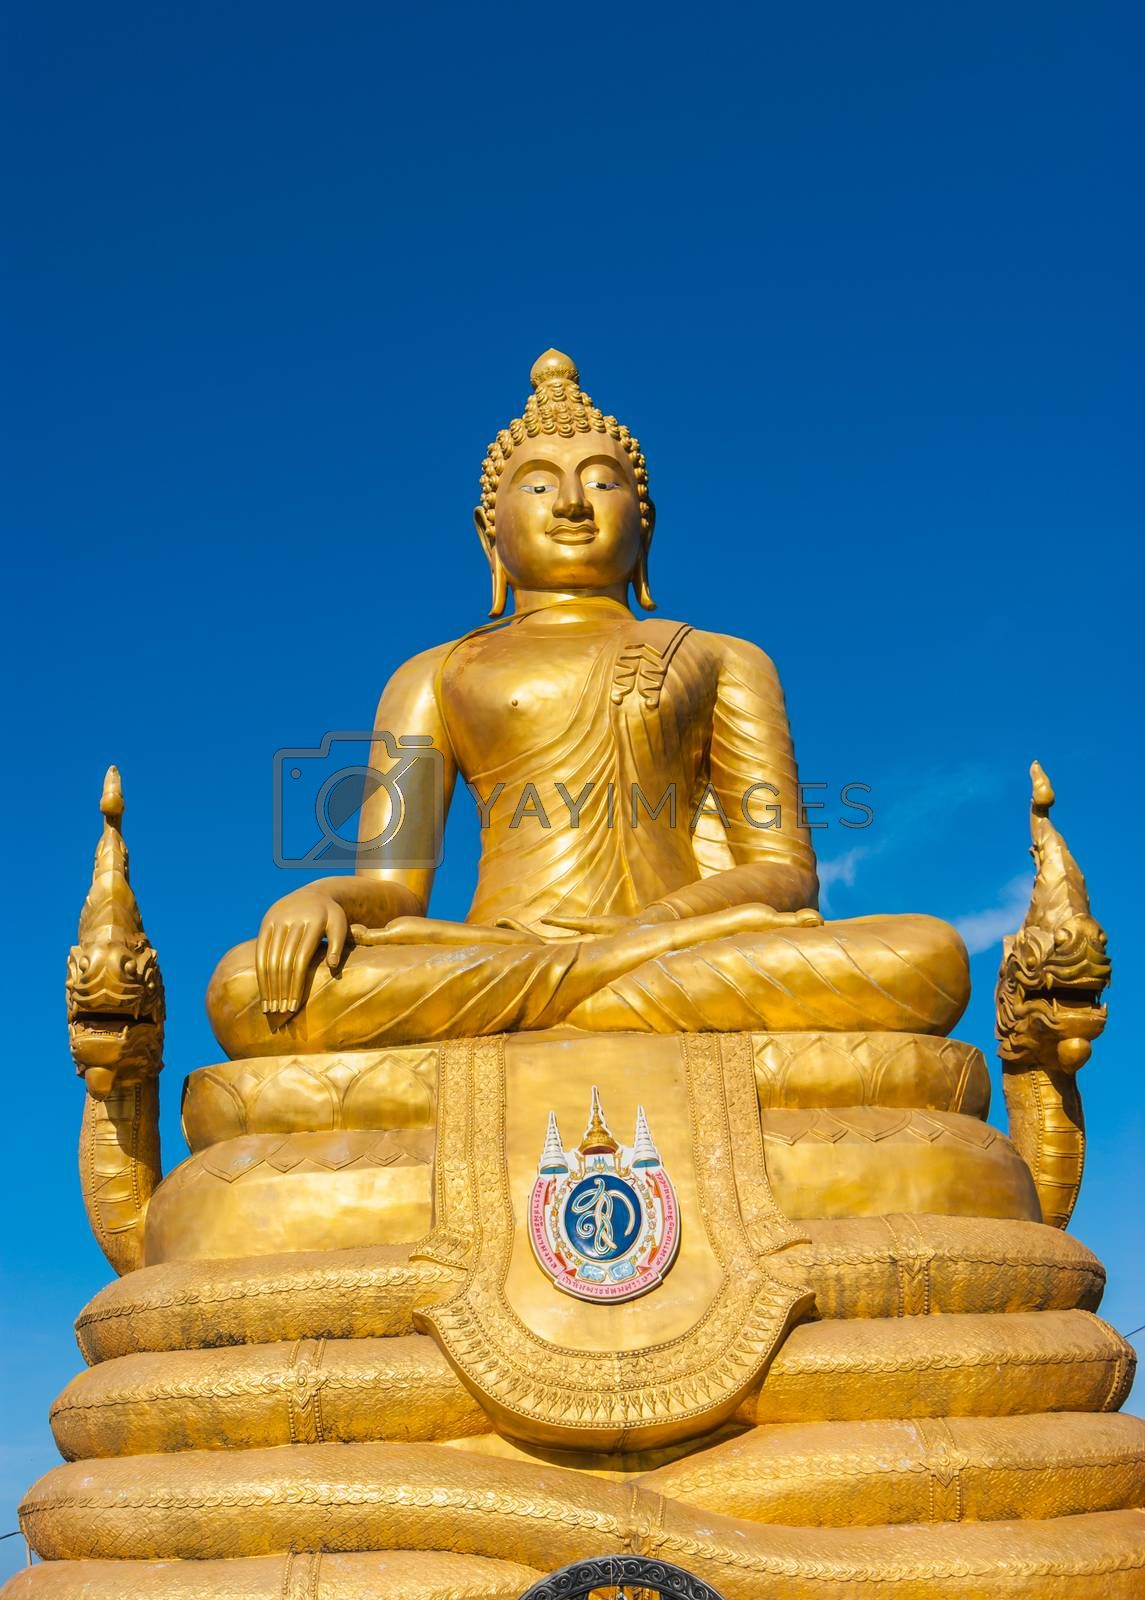 Royalty free image of 12 meters high Big Buddha Image, made of 22 tons of brass in Phu by oleg_zhukov